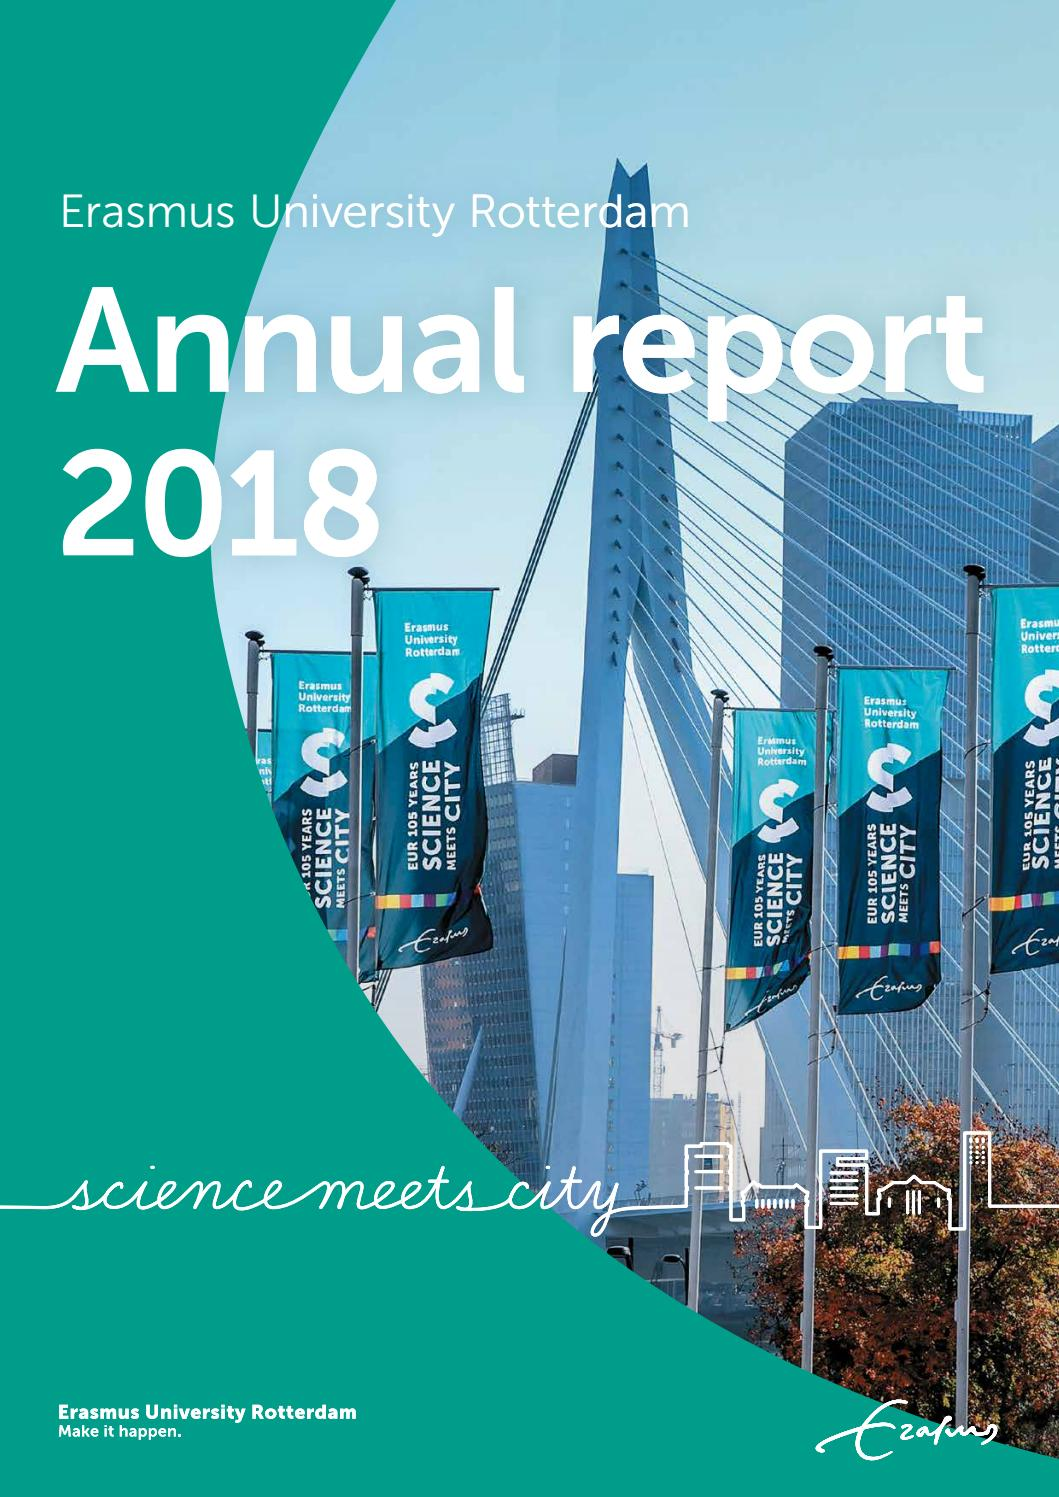 Erasmus University Rotterdam Annual Report 2018 By Erasmus